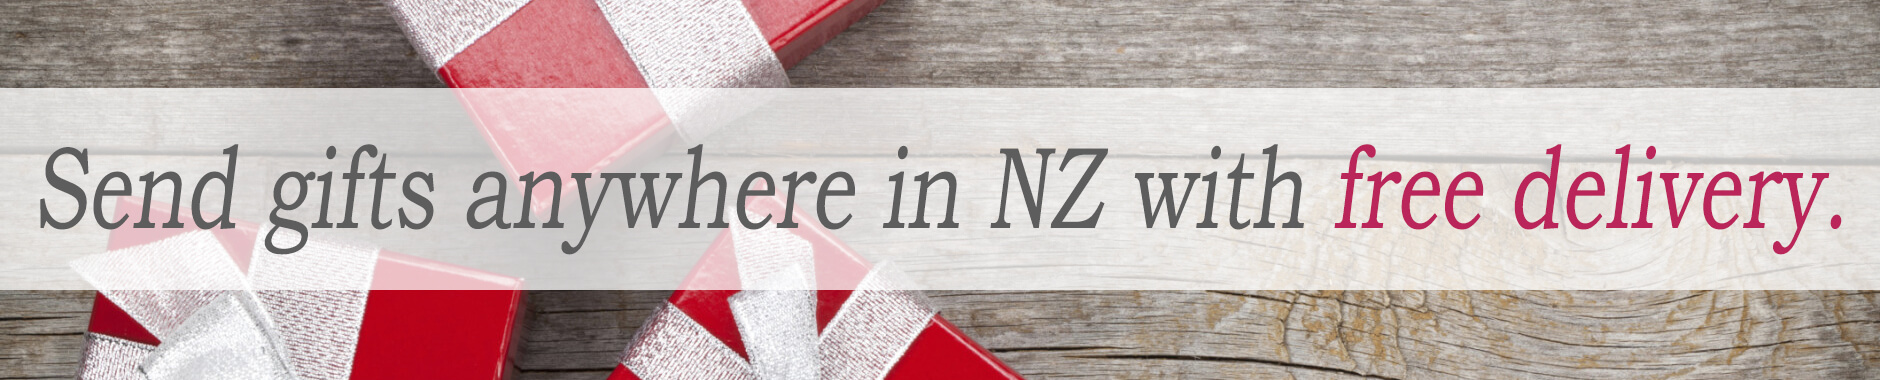 Our NZ gift baskets are fabulous, the best gourmet and pamper hamper delivery company in New Zealand! Choose a gift hamper or gourmet gift packed with ...